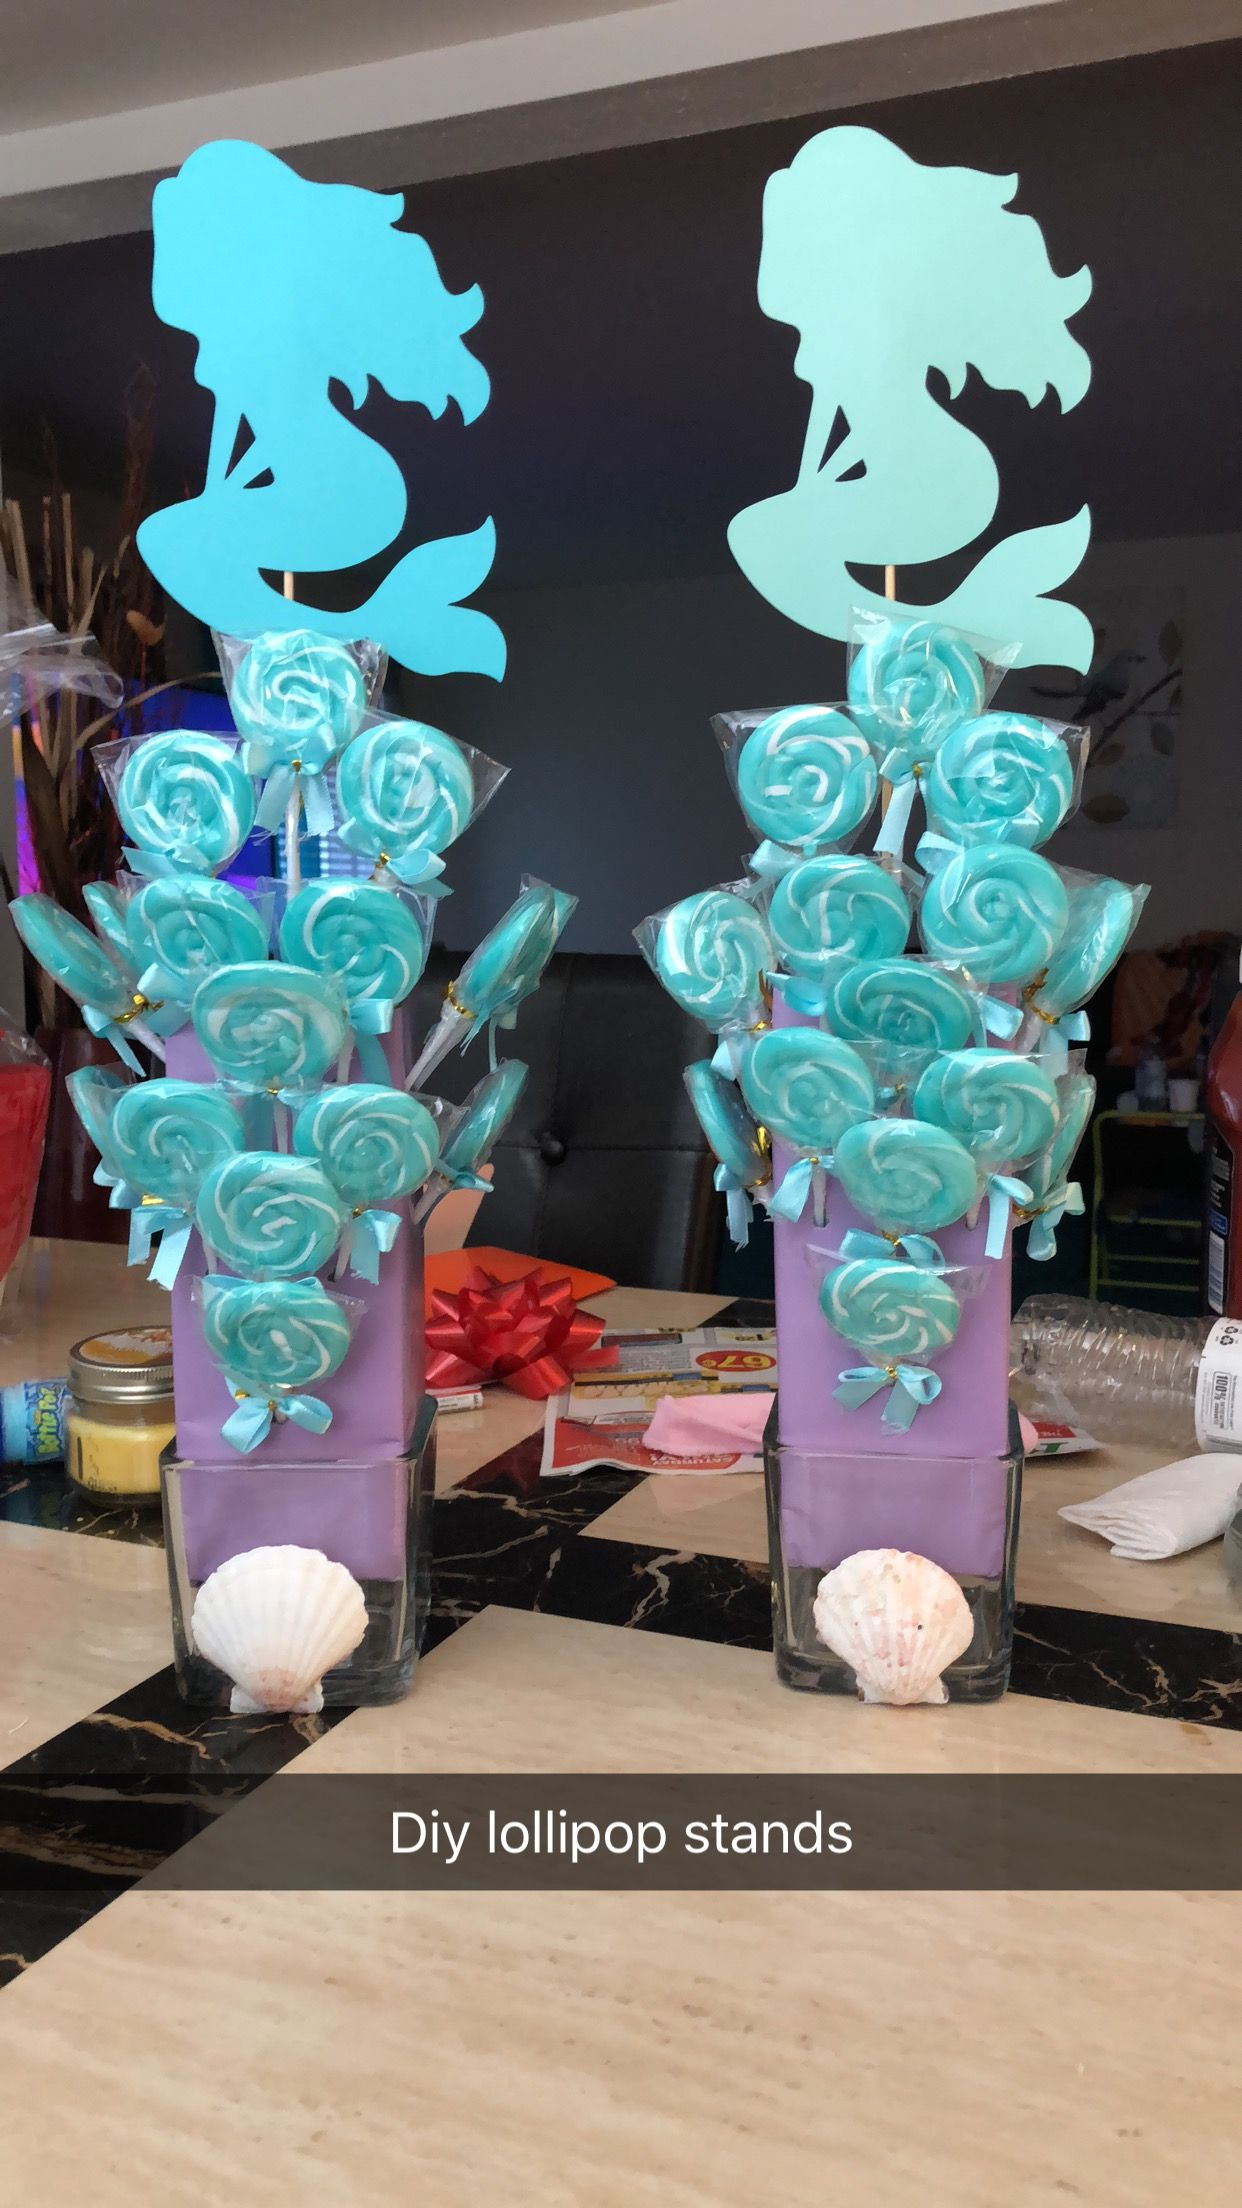 Diy lollipop stands purchased seashells vases wrapping